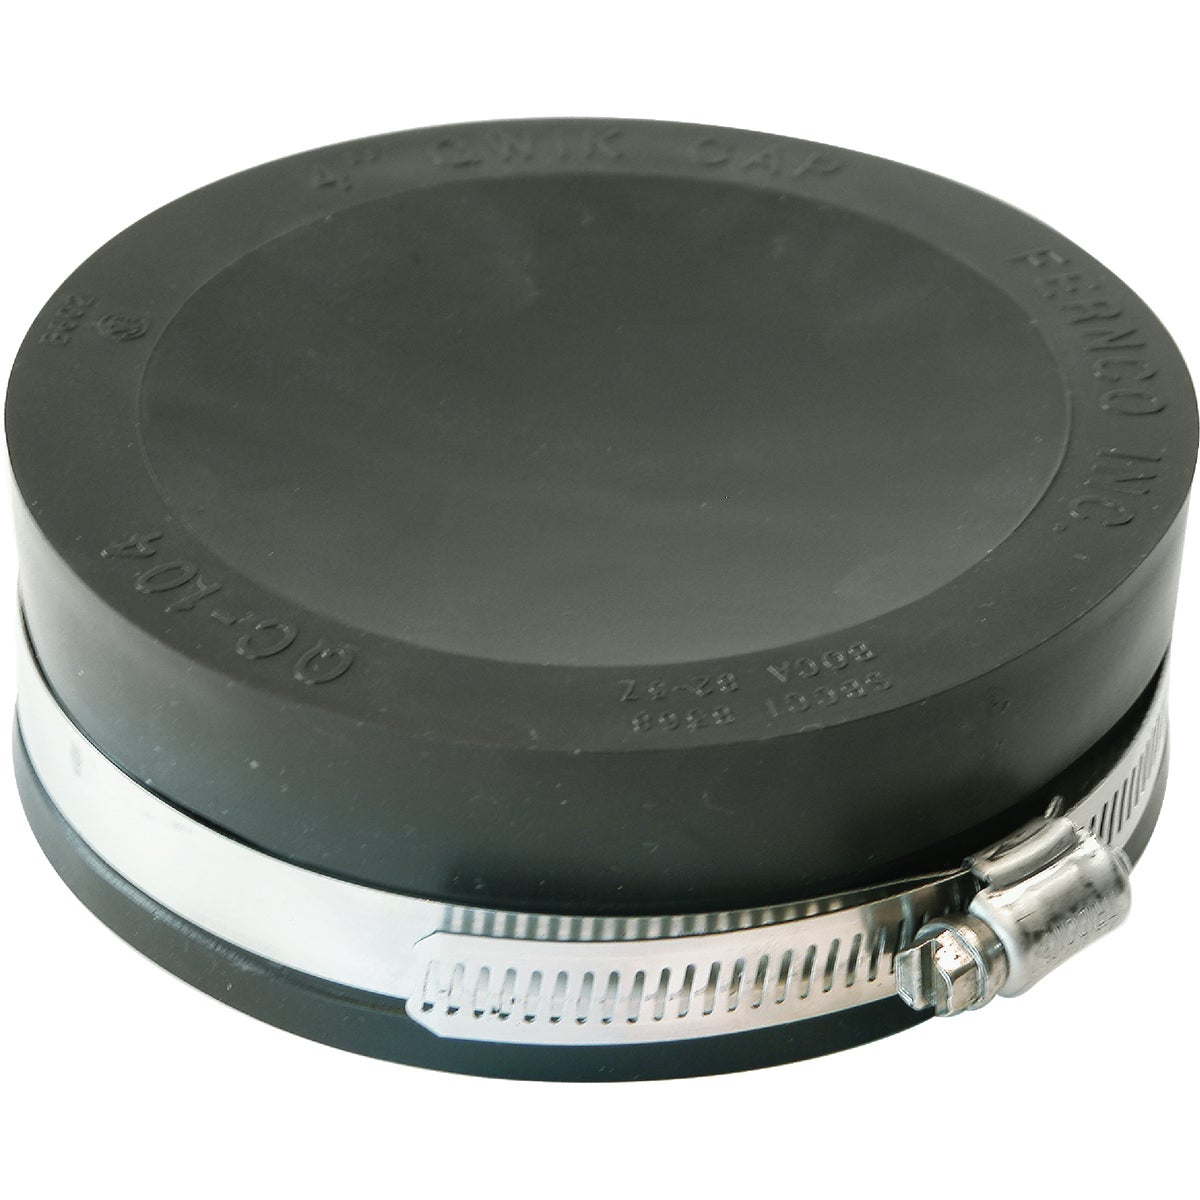 "3"" PVC PIPE CAP - PQC-103 by Fernco Inc"